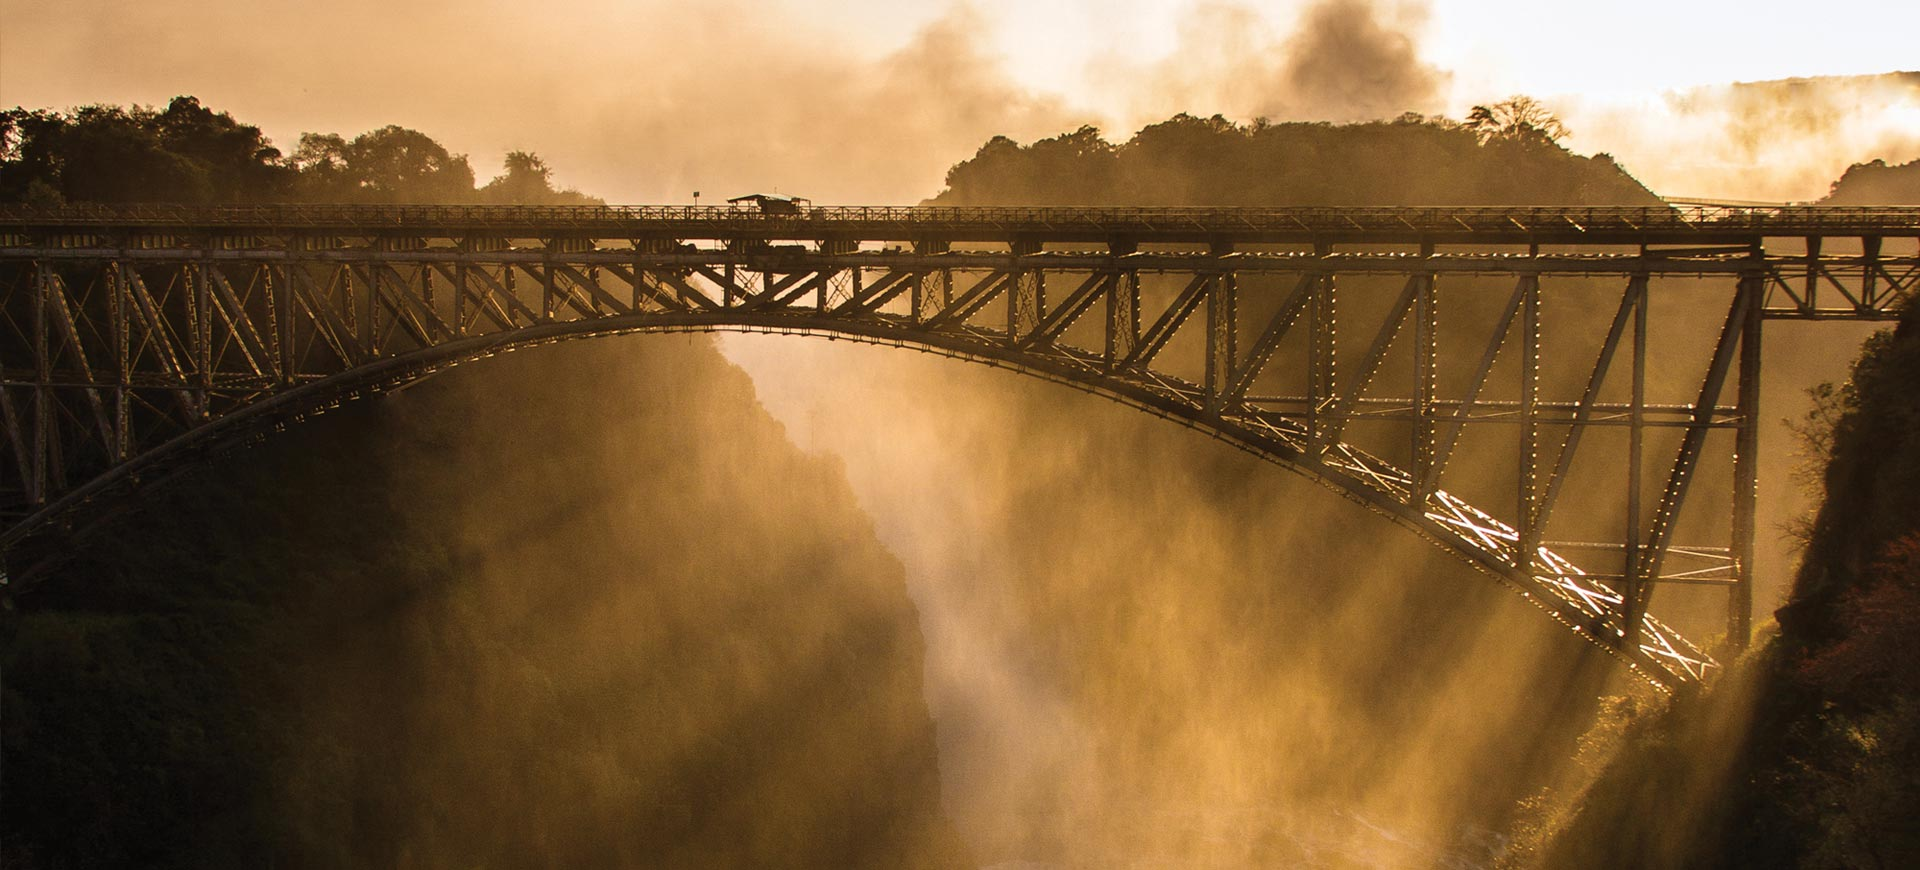 Steam Train Bridge Victoria Falls